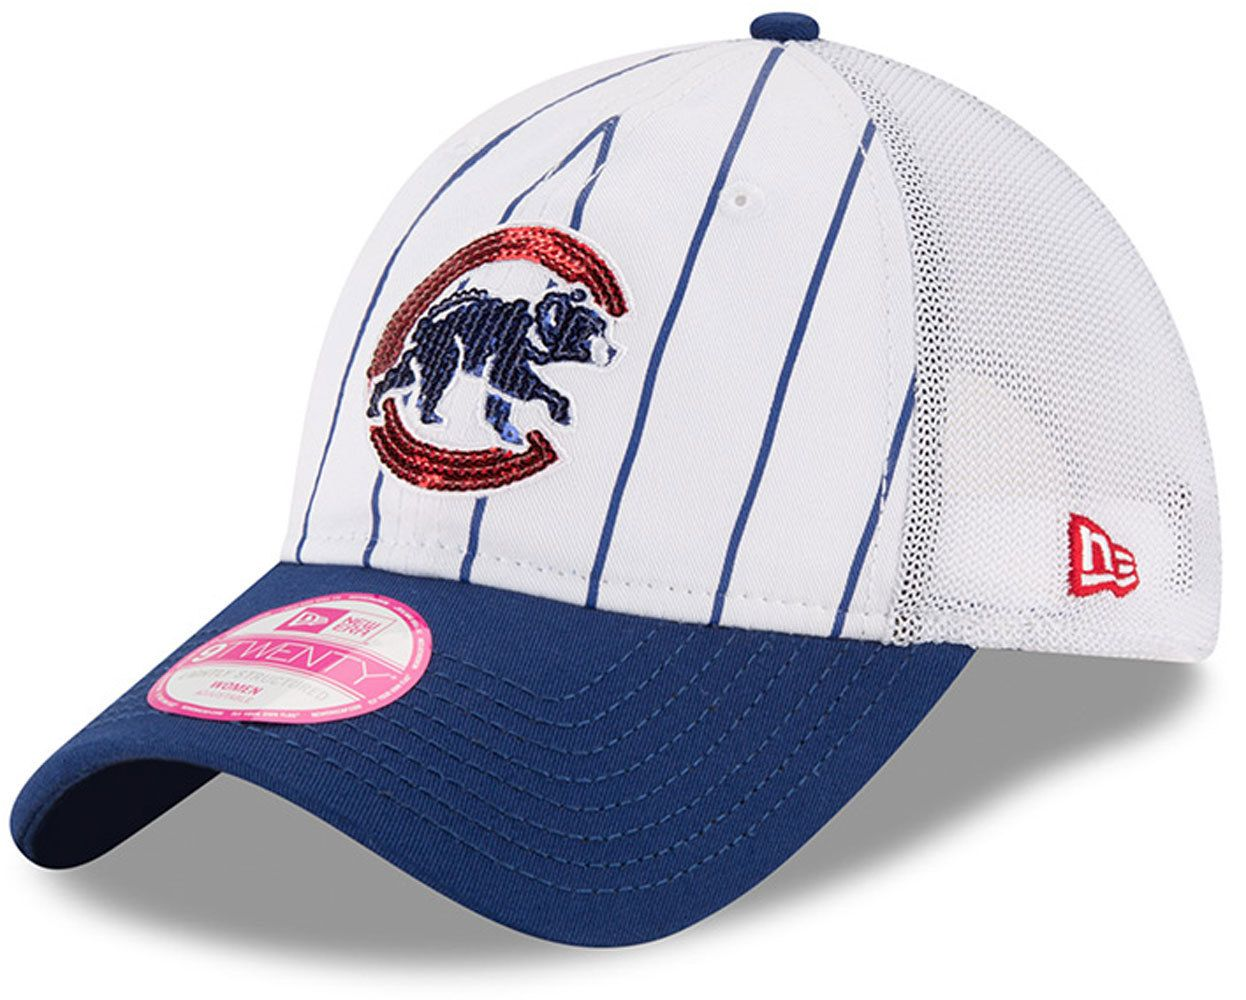 a9ea16a6 Chicago Cubs Truck Lust 9Twenty Adjustable Hat by New Era #ChicagoCubs #Cubs  #FlyTheW